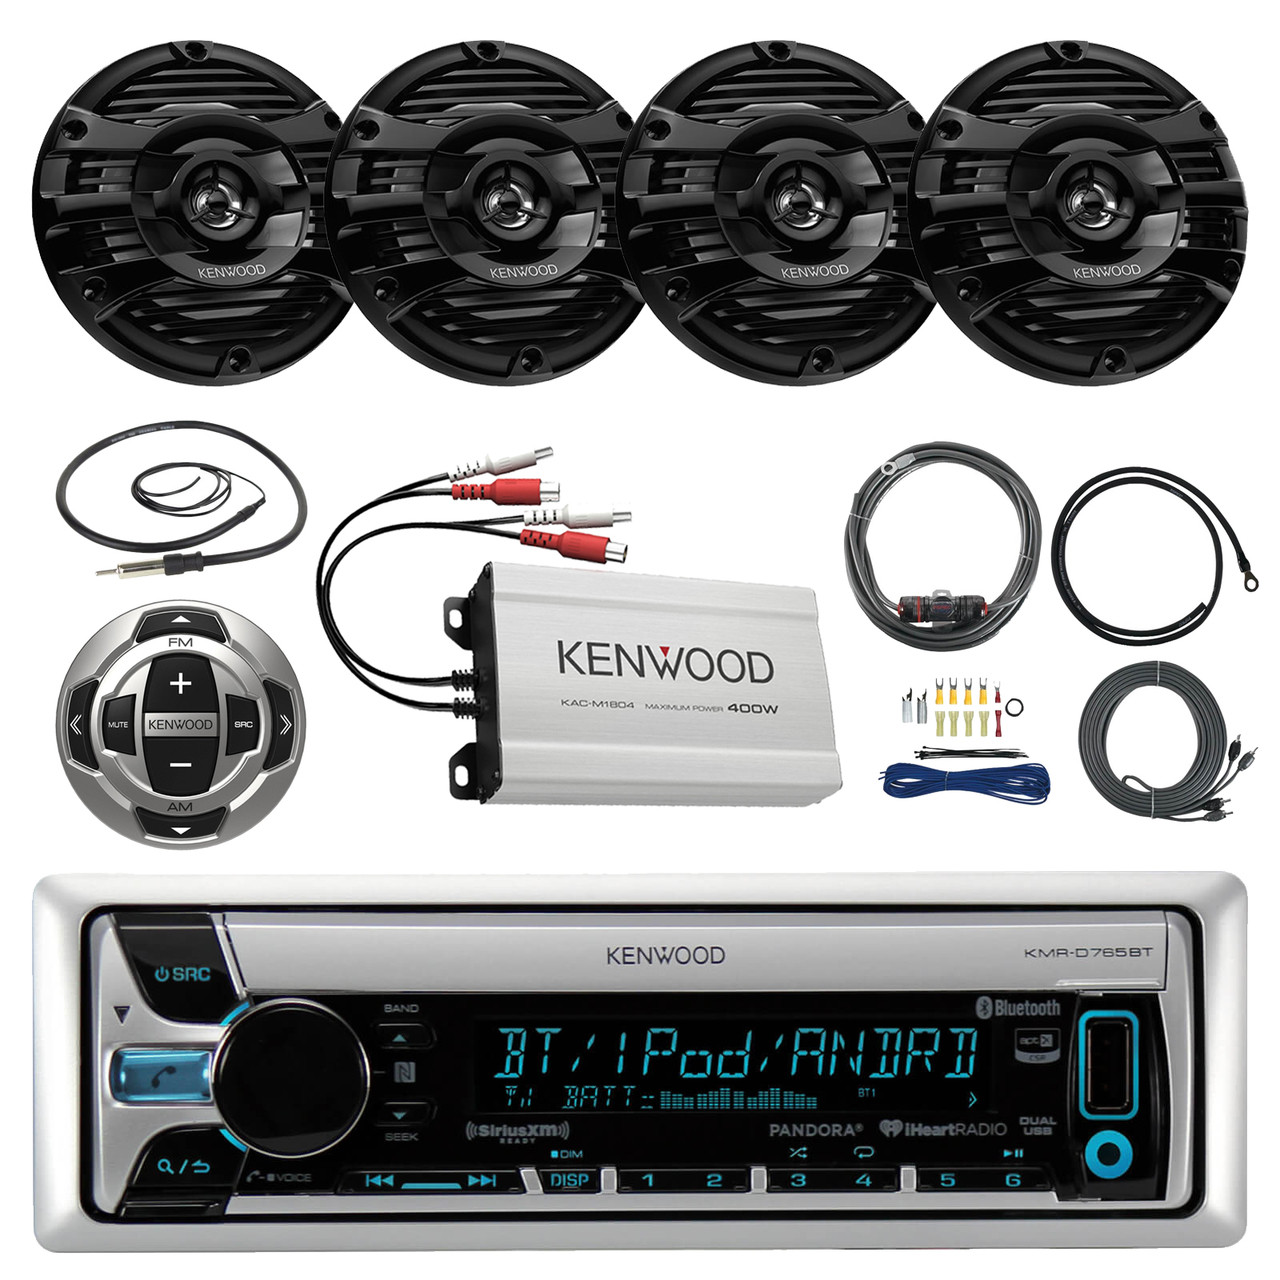 small resolution of 21 29 pontoon boat marine system kenwood kmr d768bt bluetooth receiver 4 x 6 5 speakers 4 channel amplifer kenwood wired remote t spec v8 series